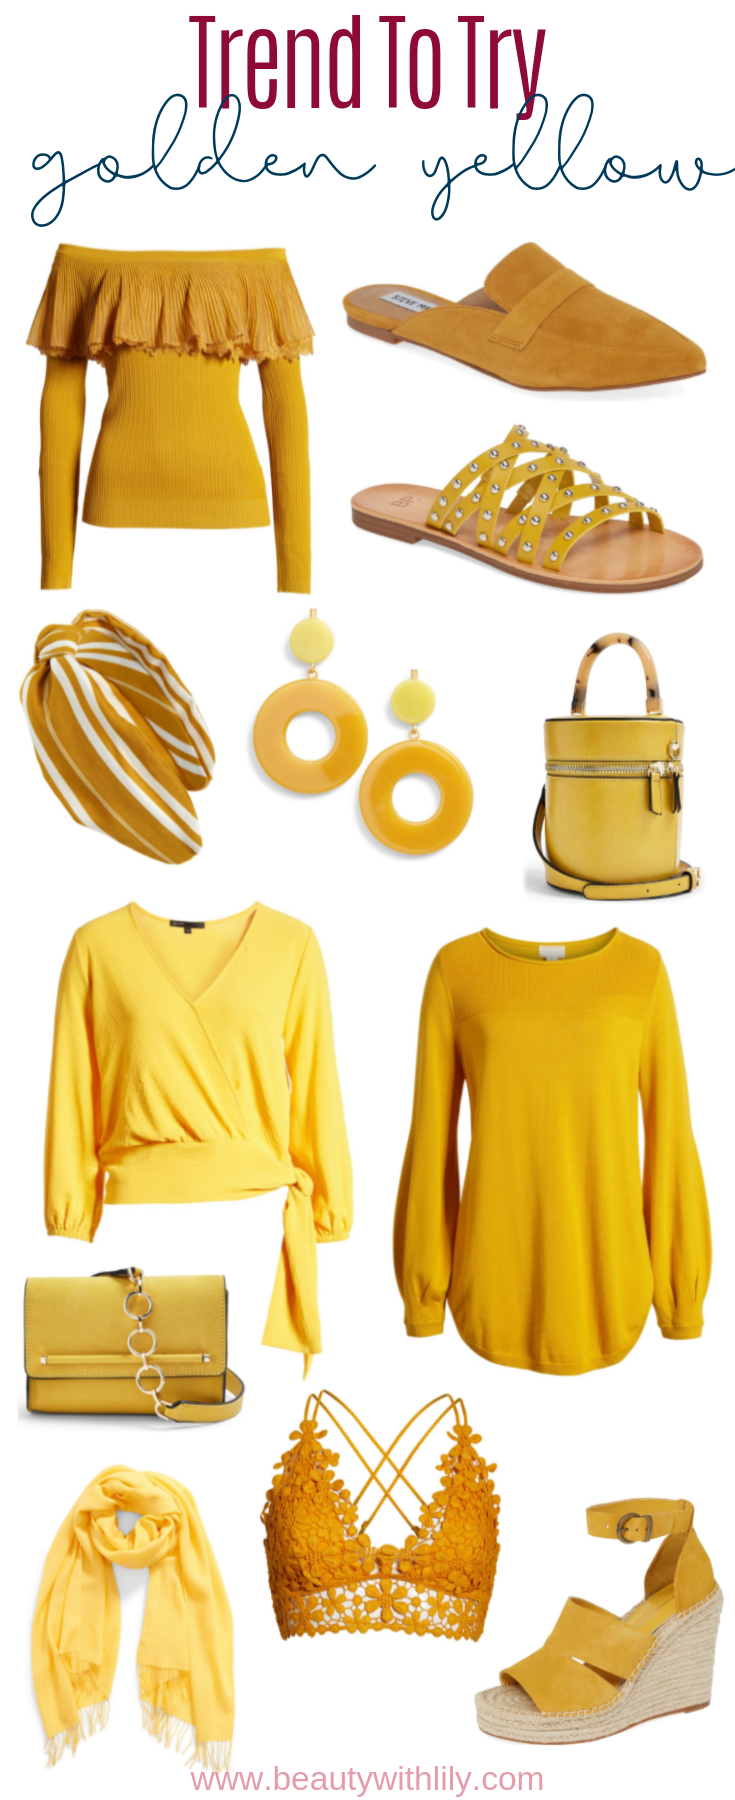 Golden Yellow Trend // Trend To Try Yellow // Summer Fashion // Fall Fashion // Summer to Fall Fashion // Transitional Fashion Pieces // Colorful Fashion // Outfit Ideas   Beauty With Lily